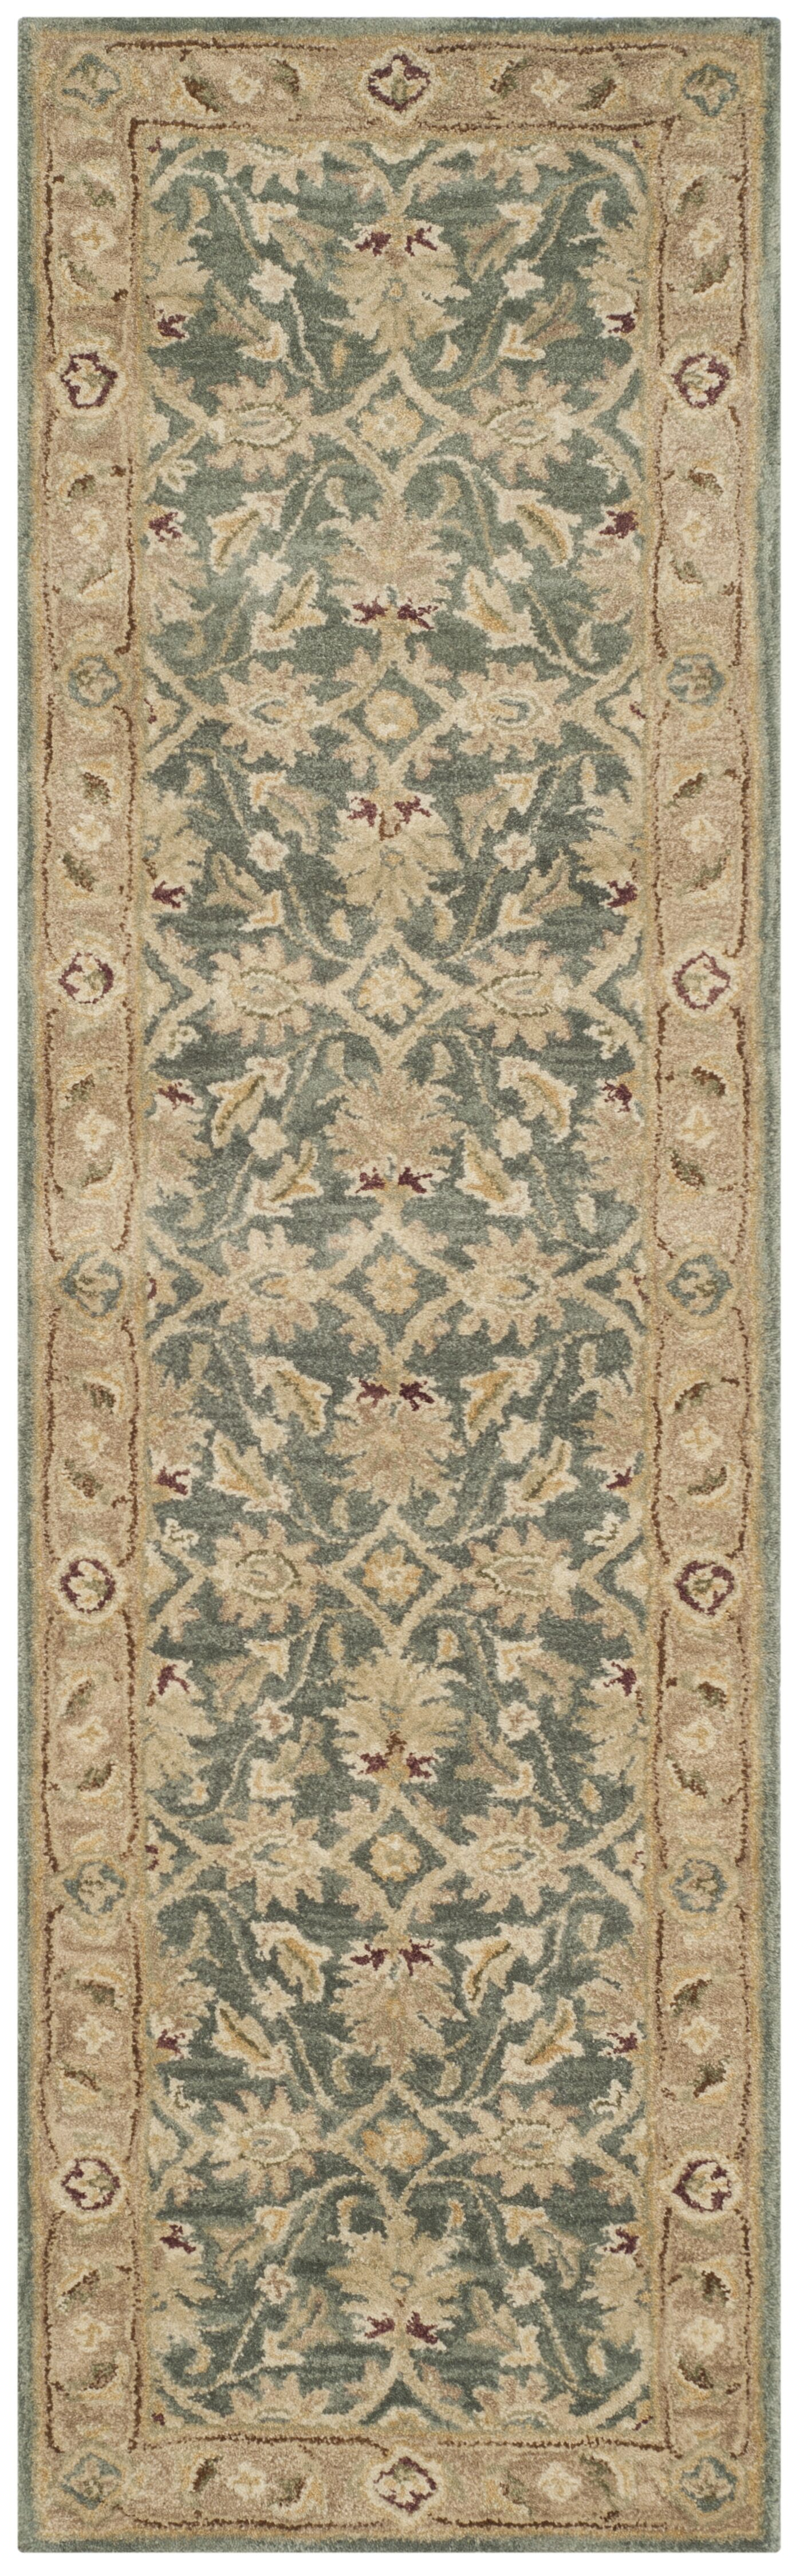 Tinley Hand-Tufted Wool Teal Blue Area Rug Rug Size: Runner 2'3